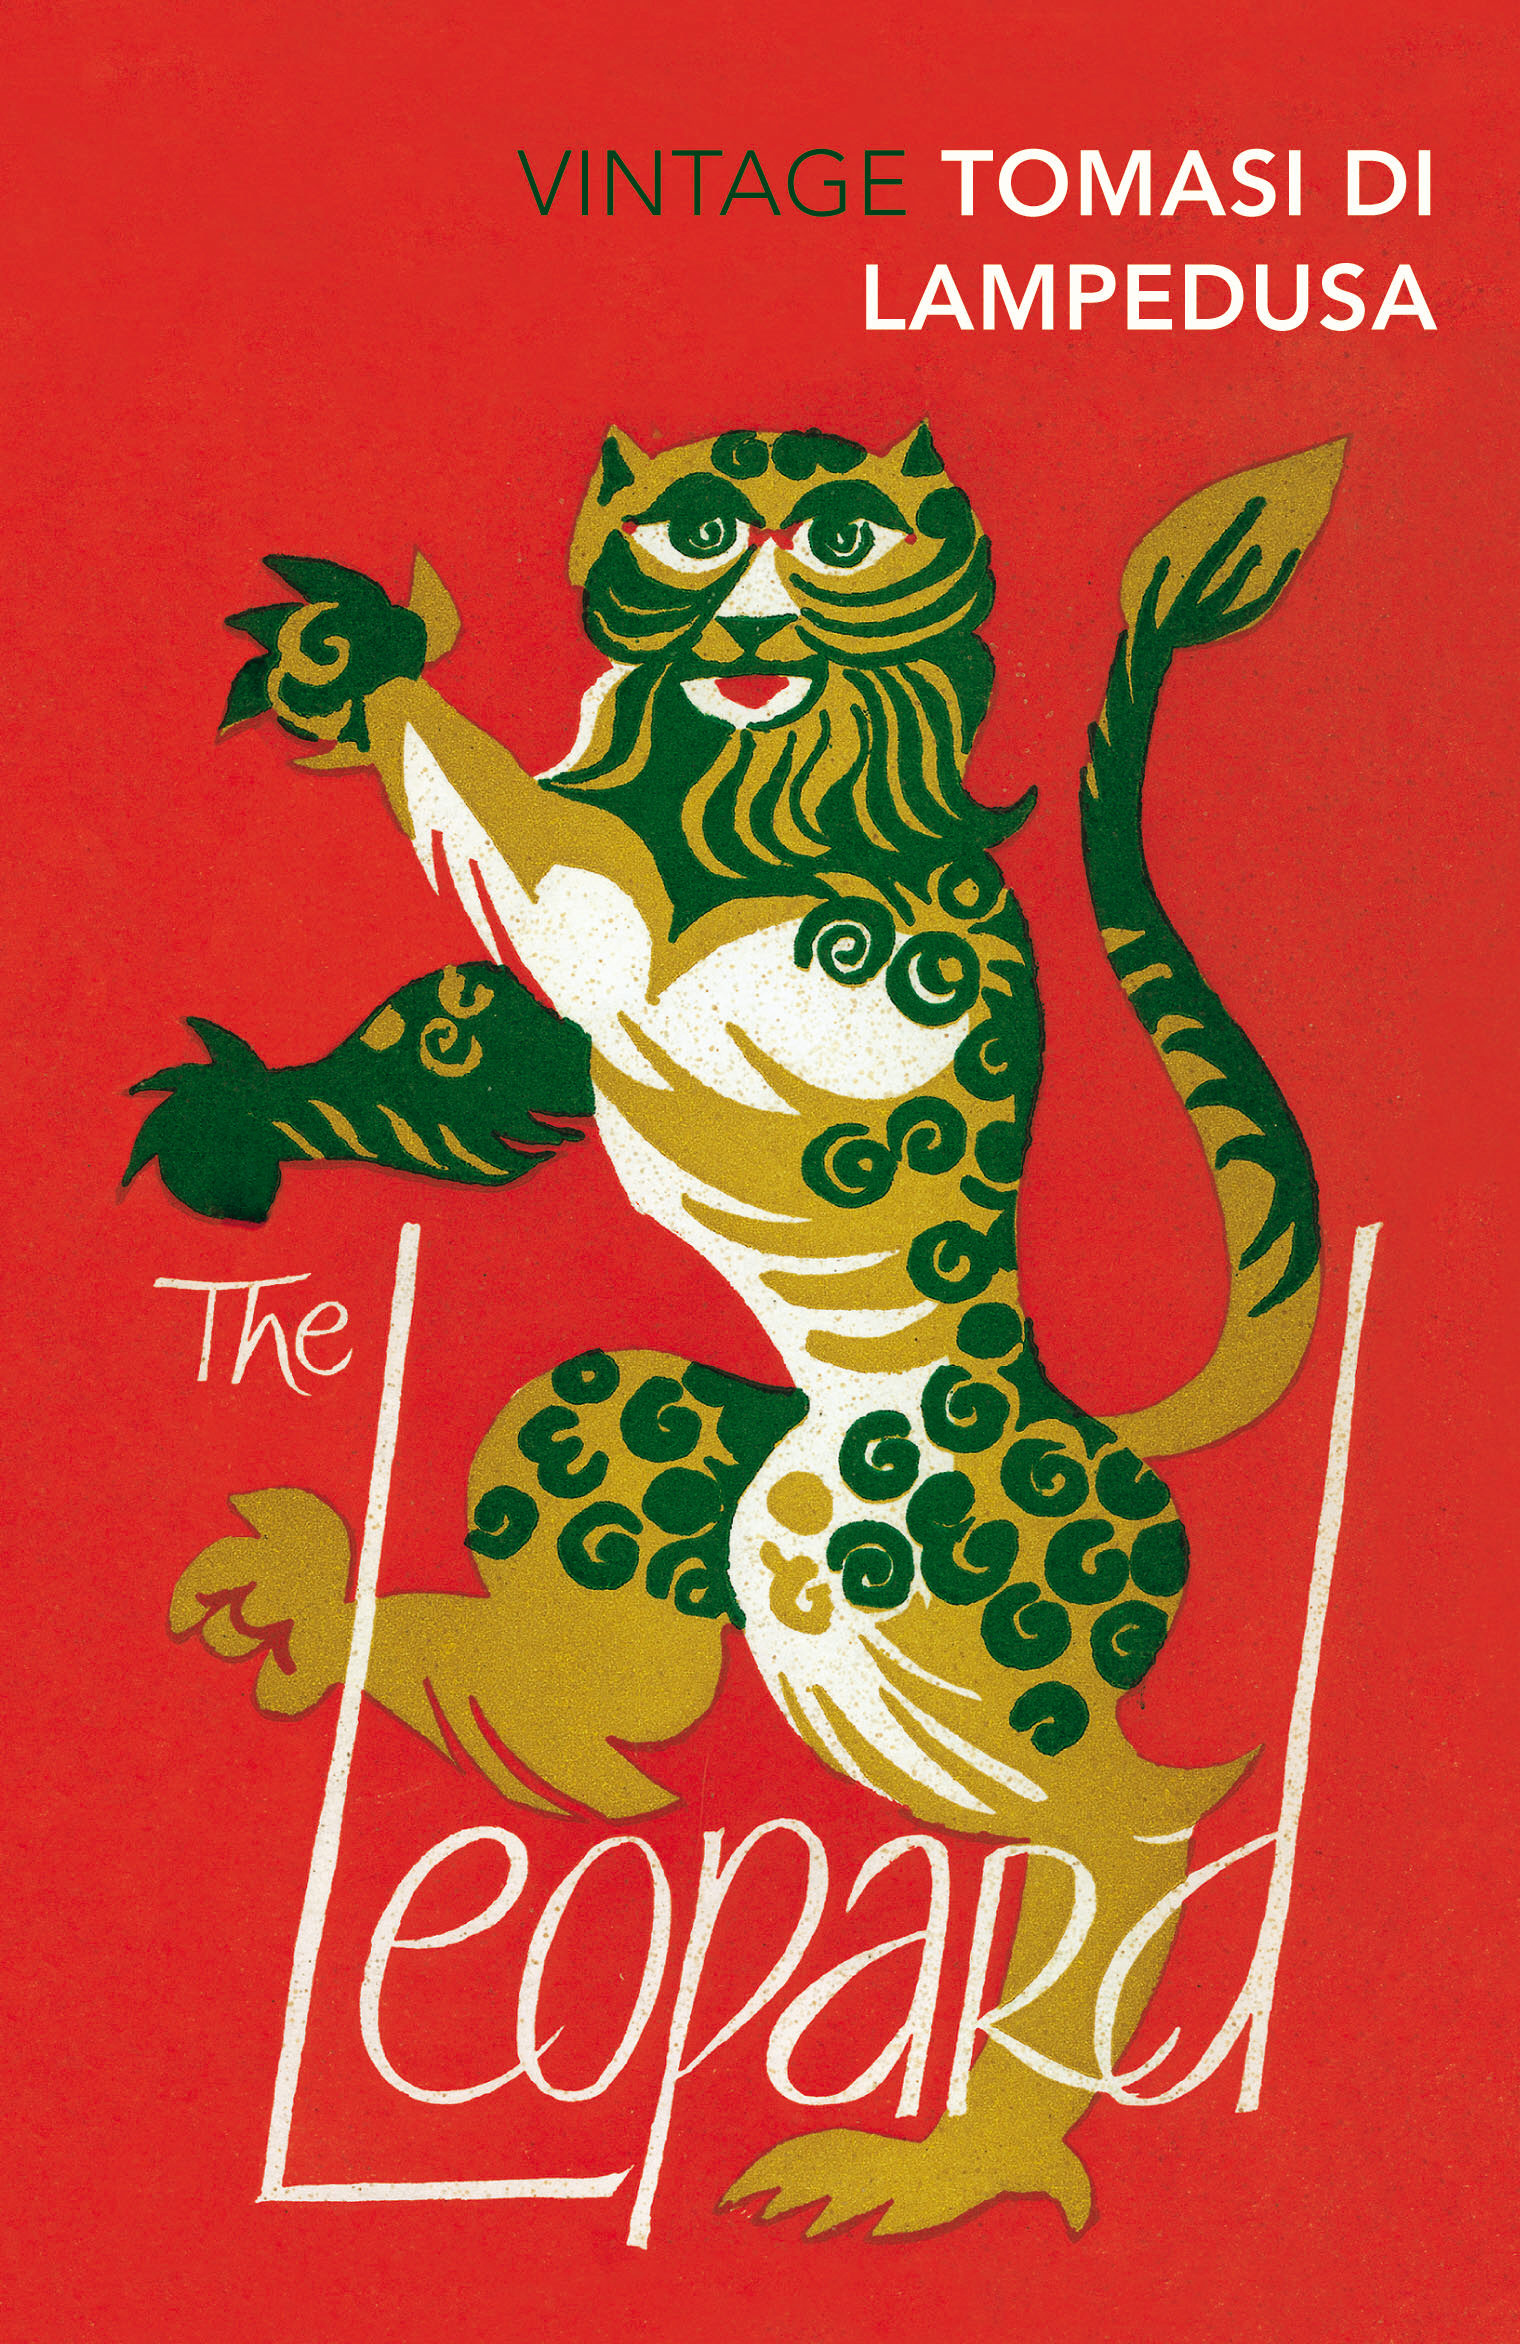 The Leopard Revised and with new material